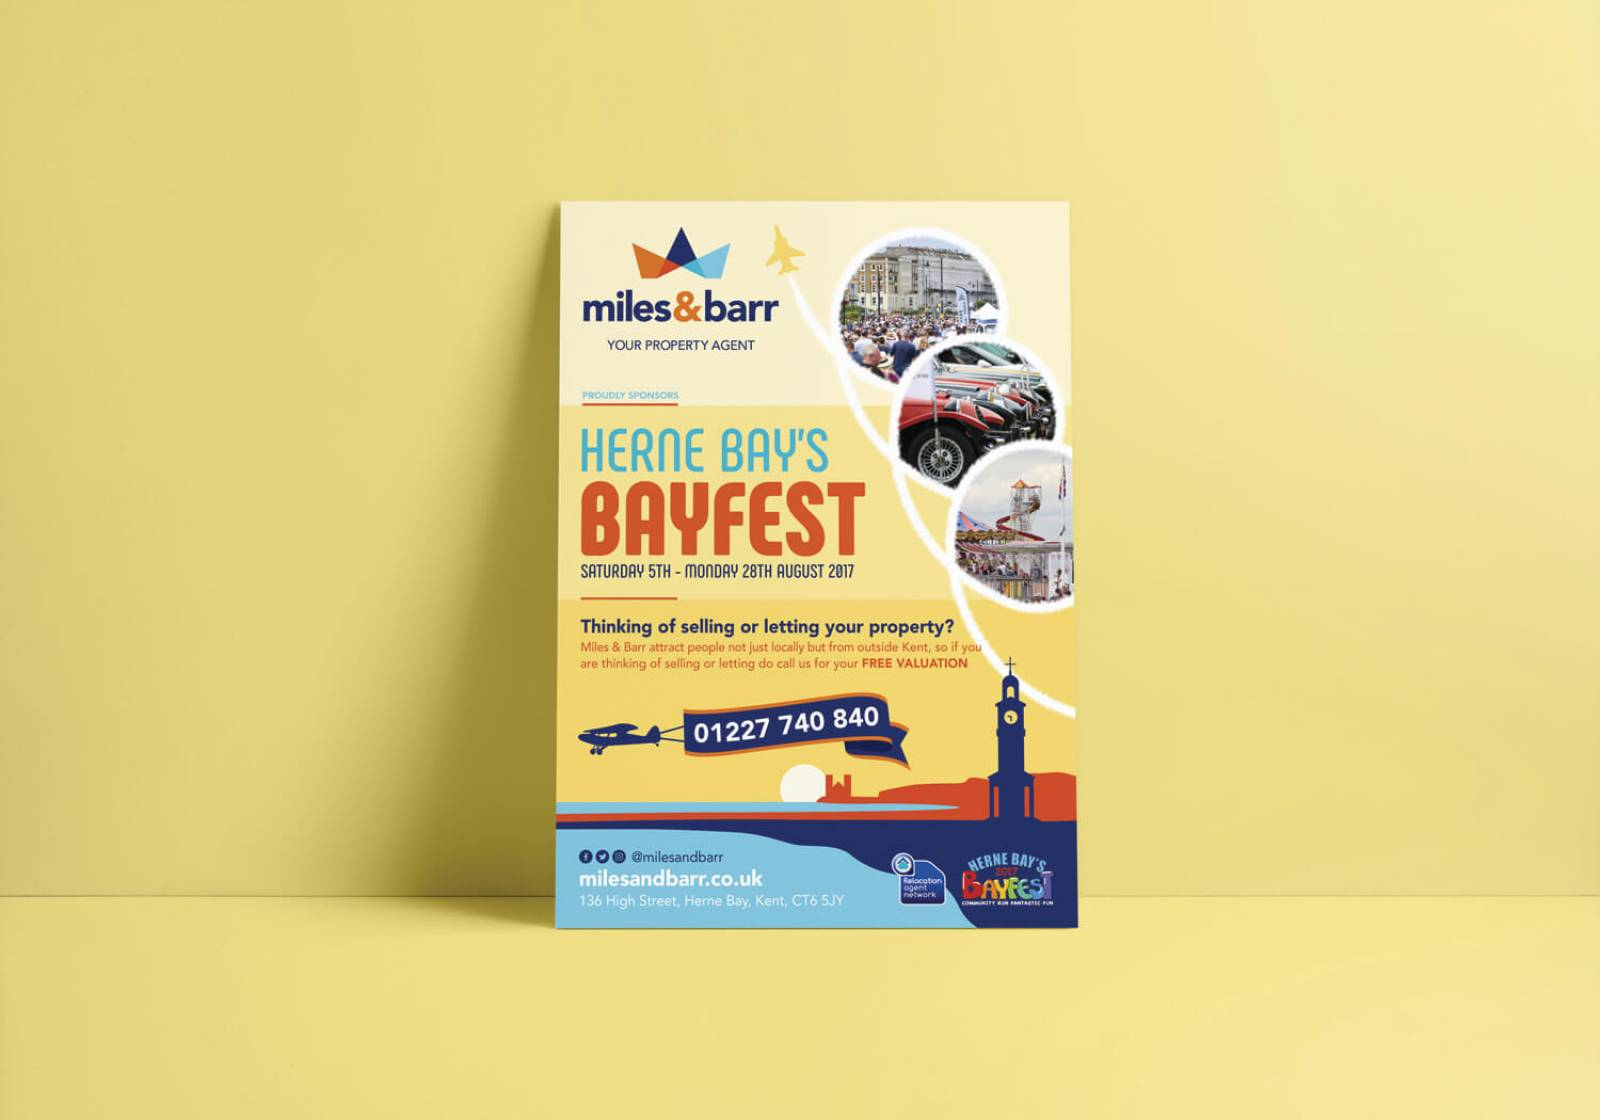 Advertising-Herne-Bay-Bayfest.jpg